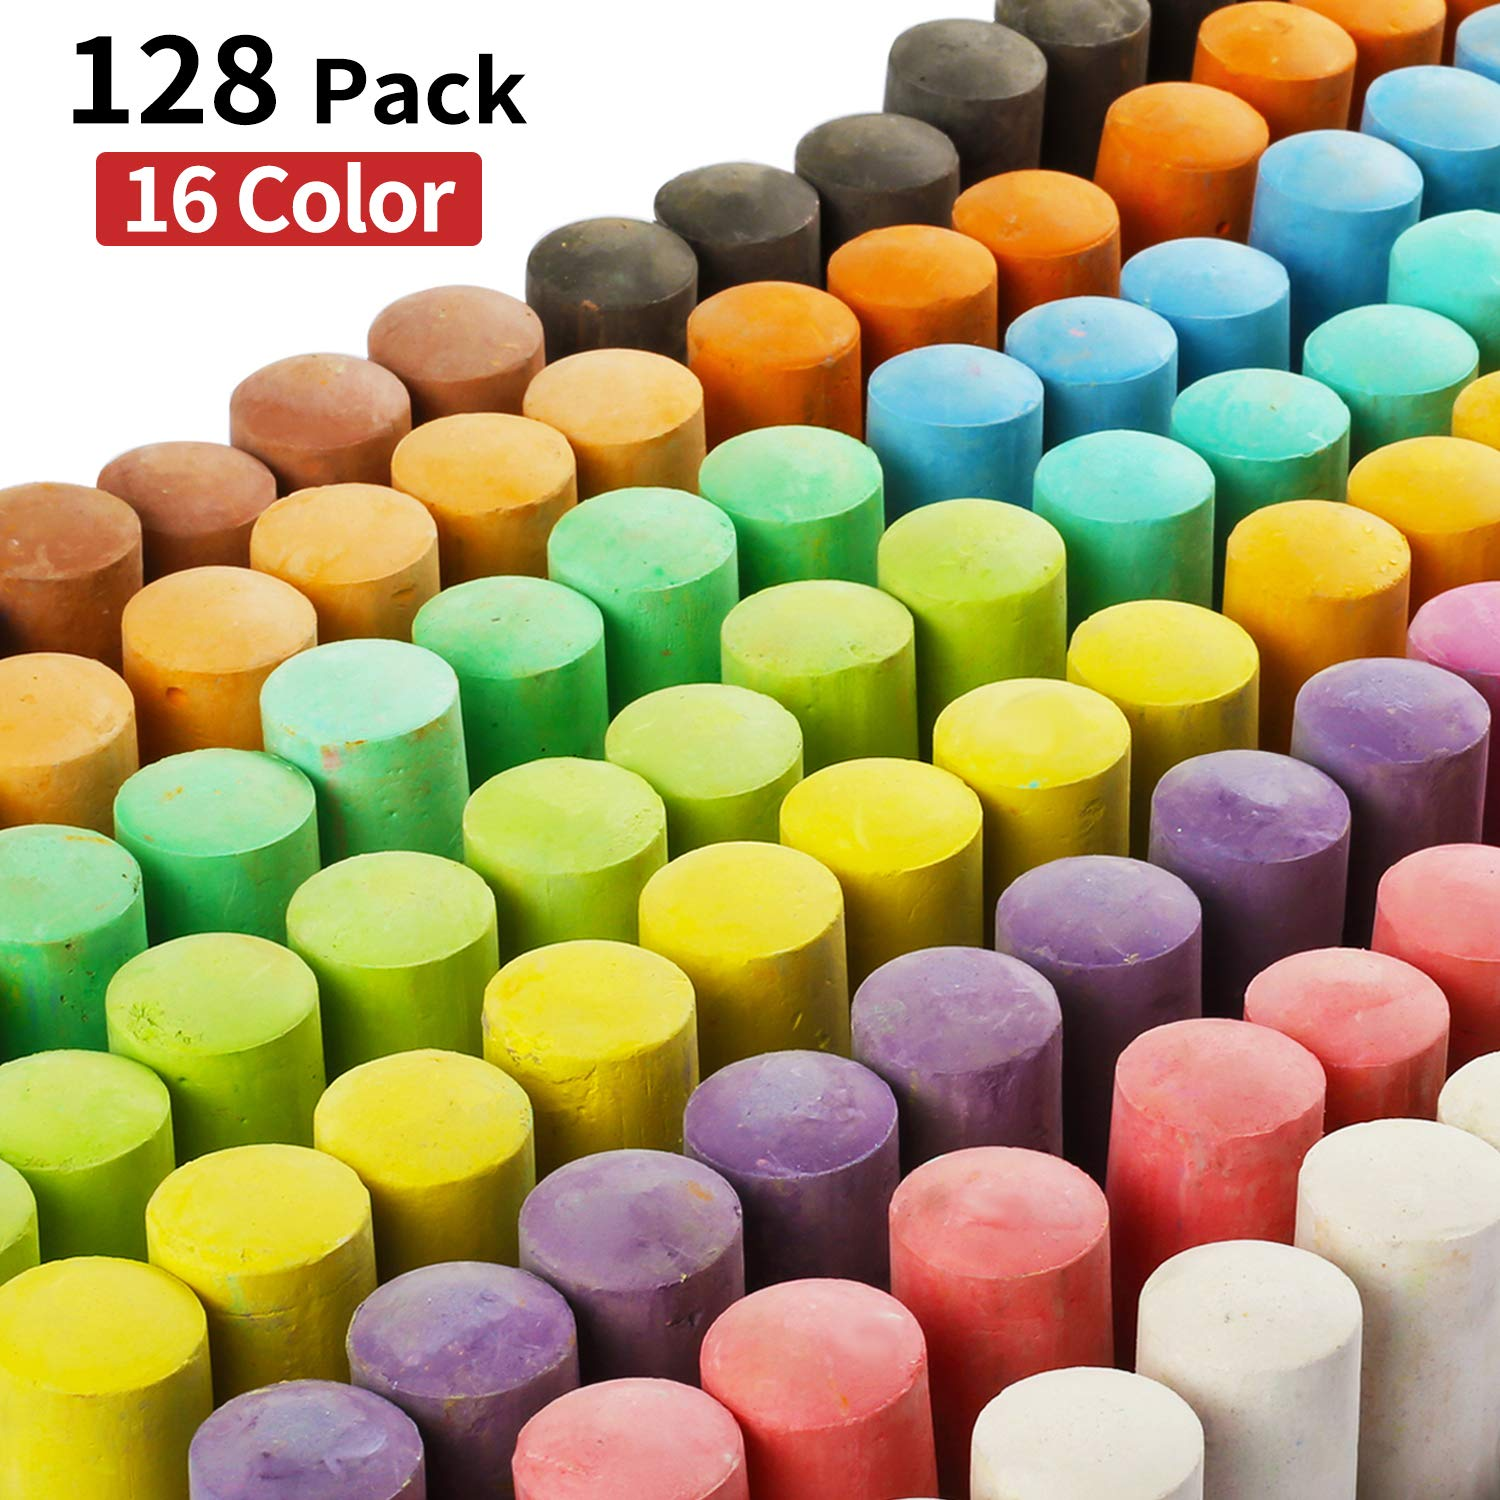 128 Pack 16 Colors Jumbo Sidewalk Chalk Set, Washable Art Play For Kid and Adult, Paint on School Classroom Chalkboard, Kitchen, Office Blackboard, Playground, Outdoor, Gift for Birthday Party by CHIMAGER